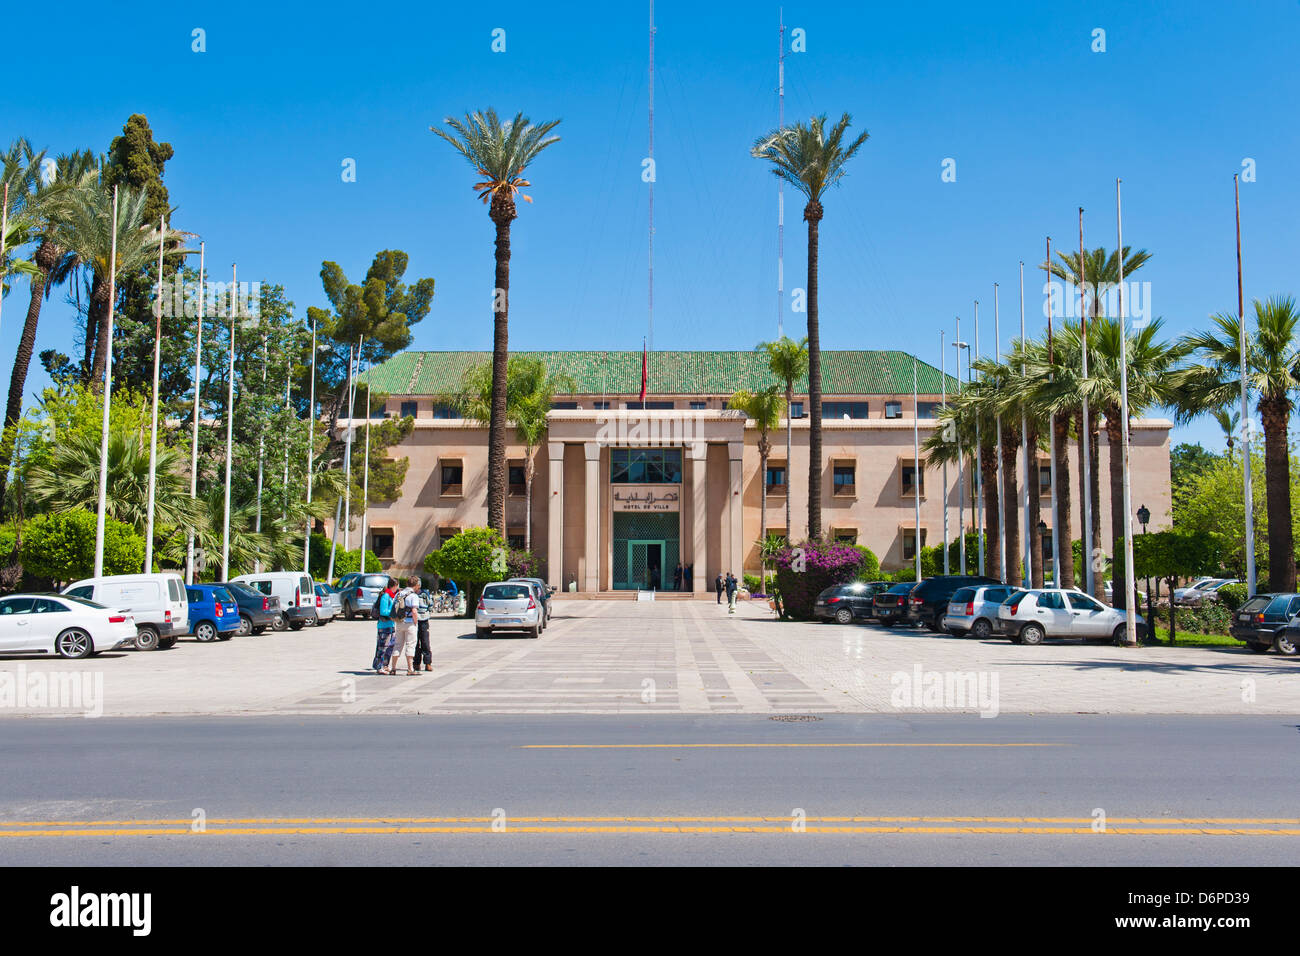 Hotel de Ville, a smart, luxury hotel in Marrakech, Morocco, North Africa, Africa - Stock Image